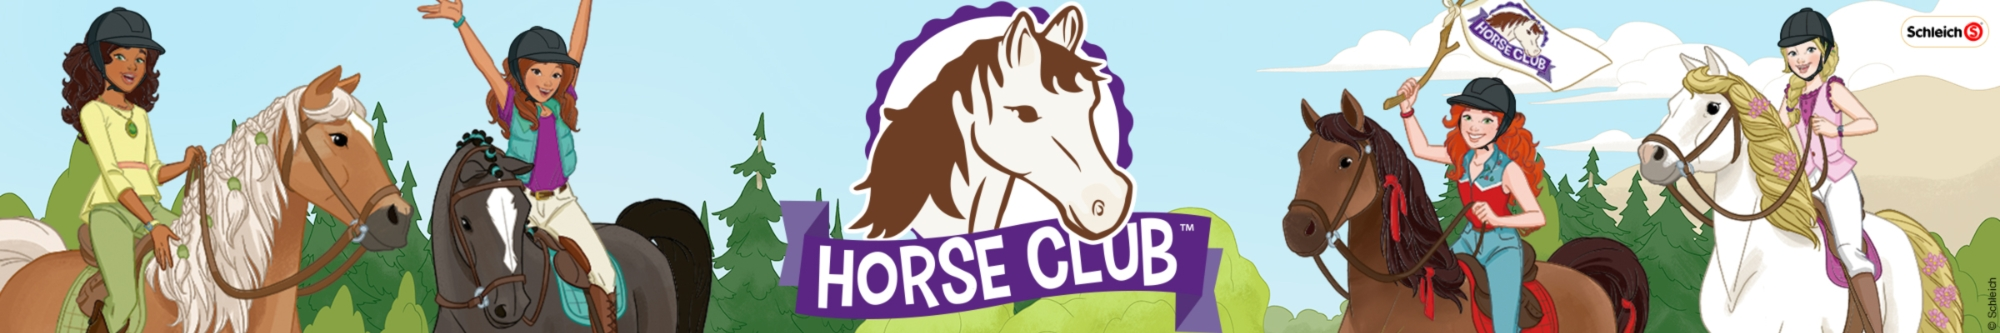 Showroom - horse club